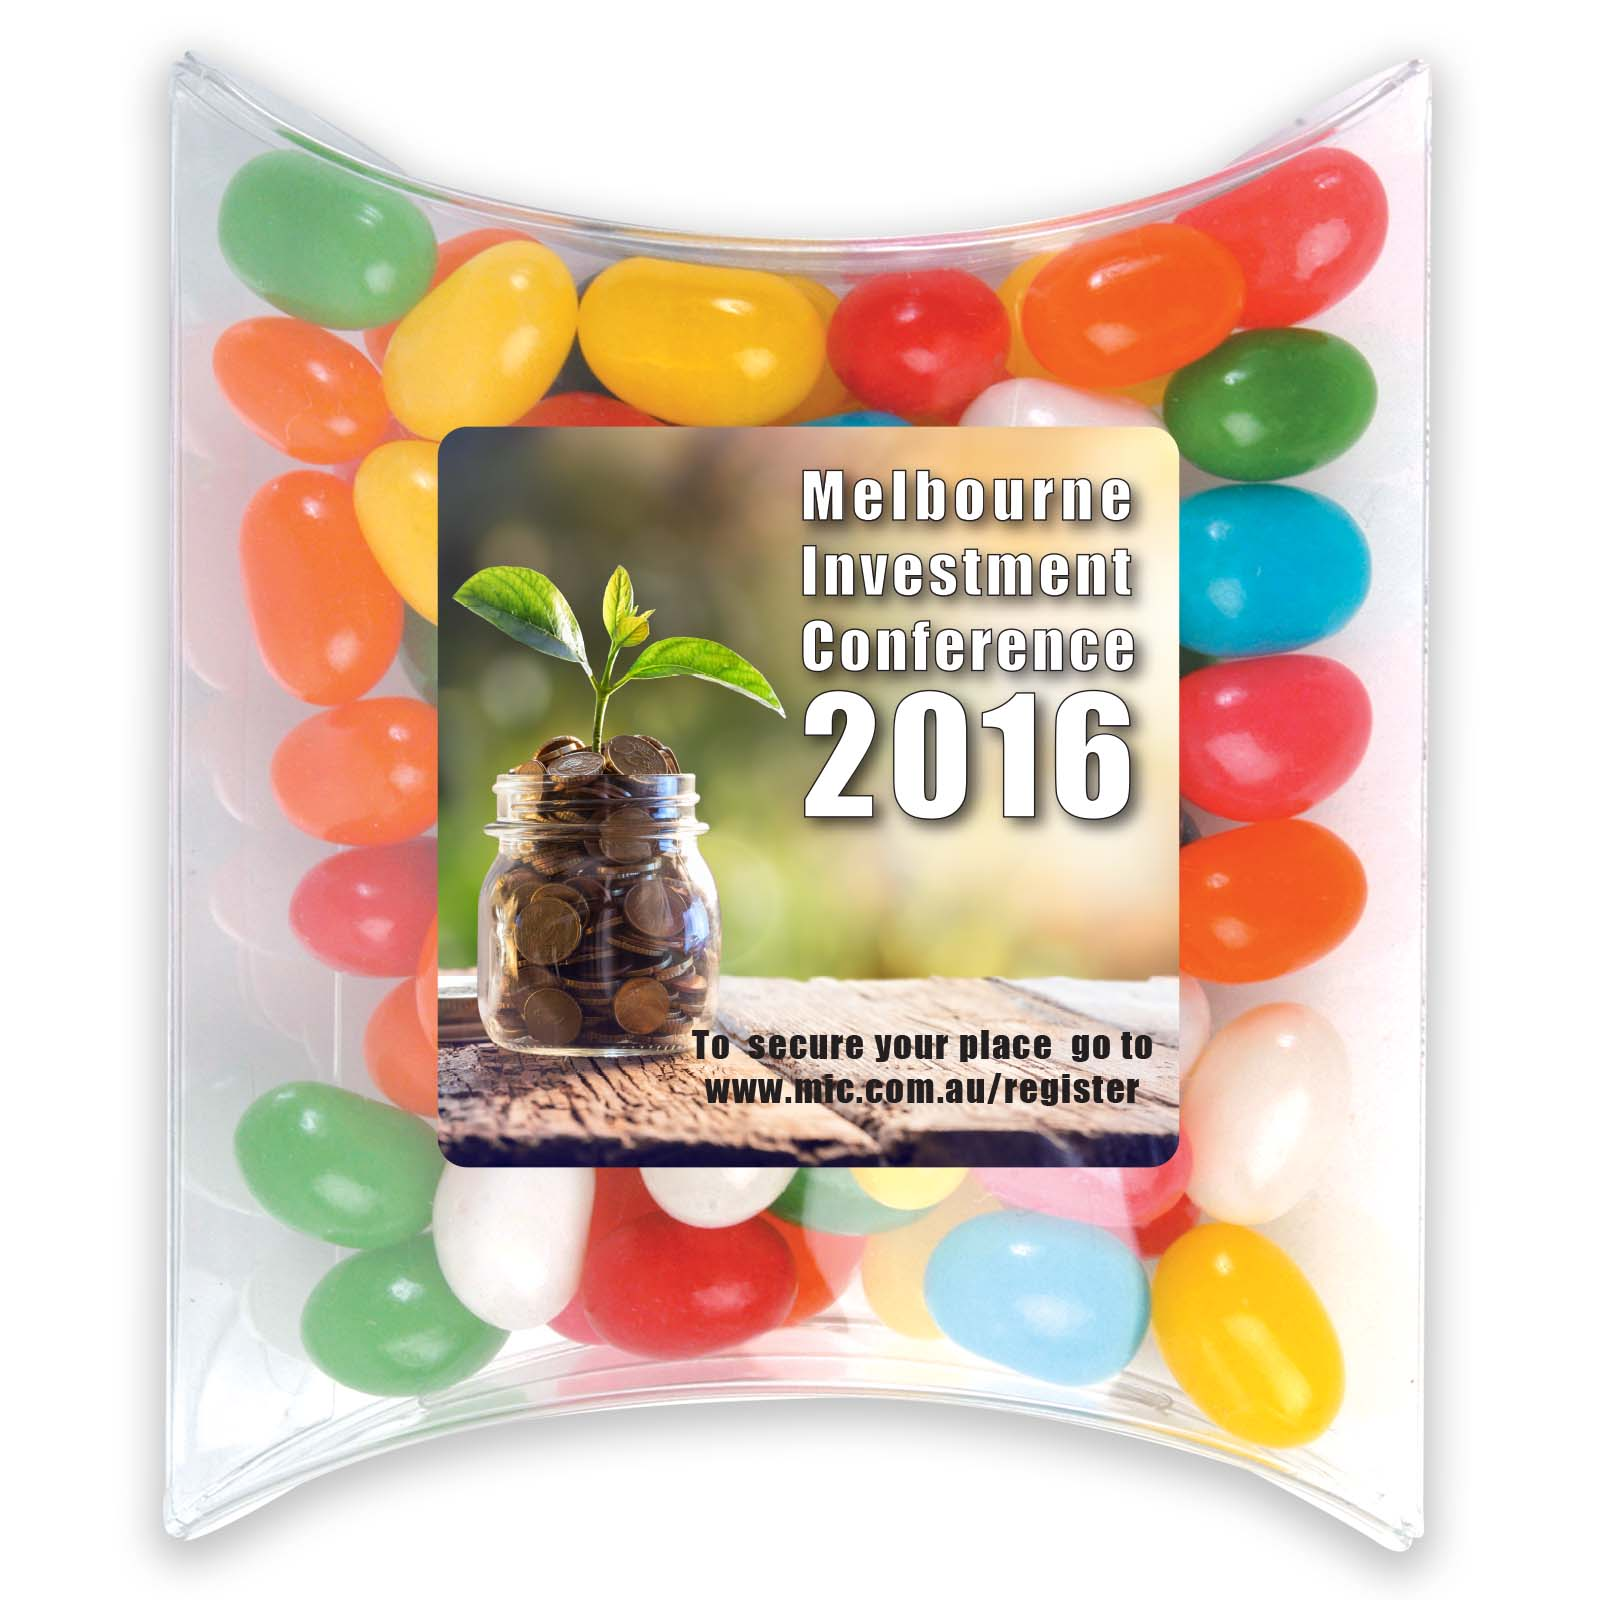 Assorted Colour Mini Jelly Beans in Pillow Pack - Includes a full colour logo